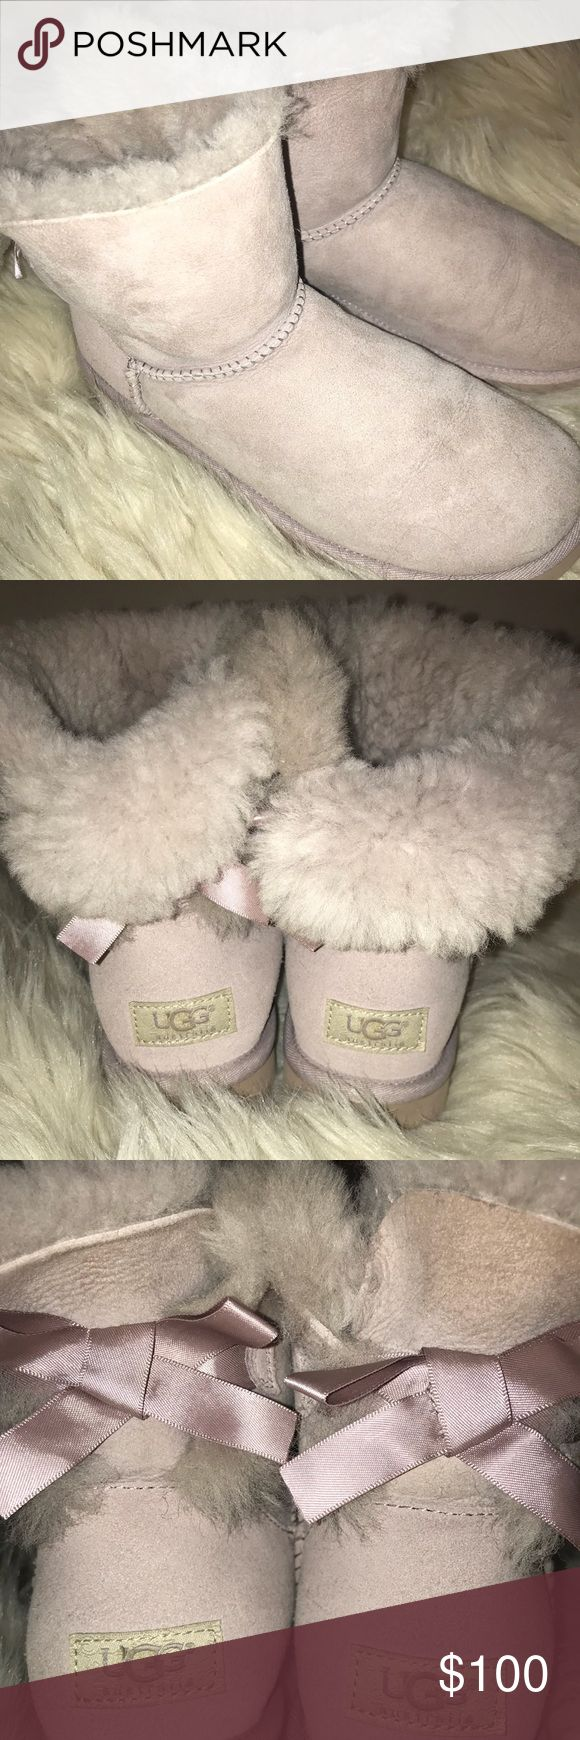 Mini Bailey bow Uggs Lavender mini bailey bow Uggs! Only worn a few times, and only indoors. Size 8. Open to offers! UGG Shoes Winter & Rain Boots